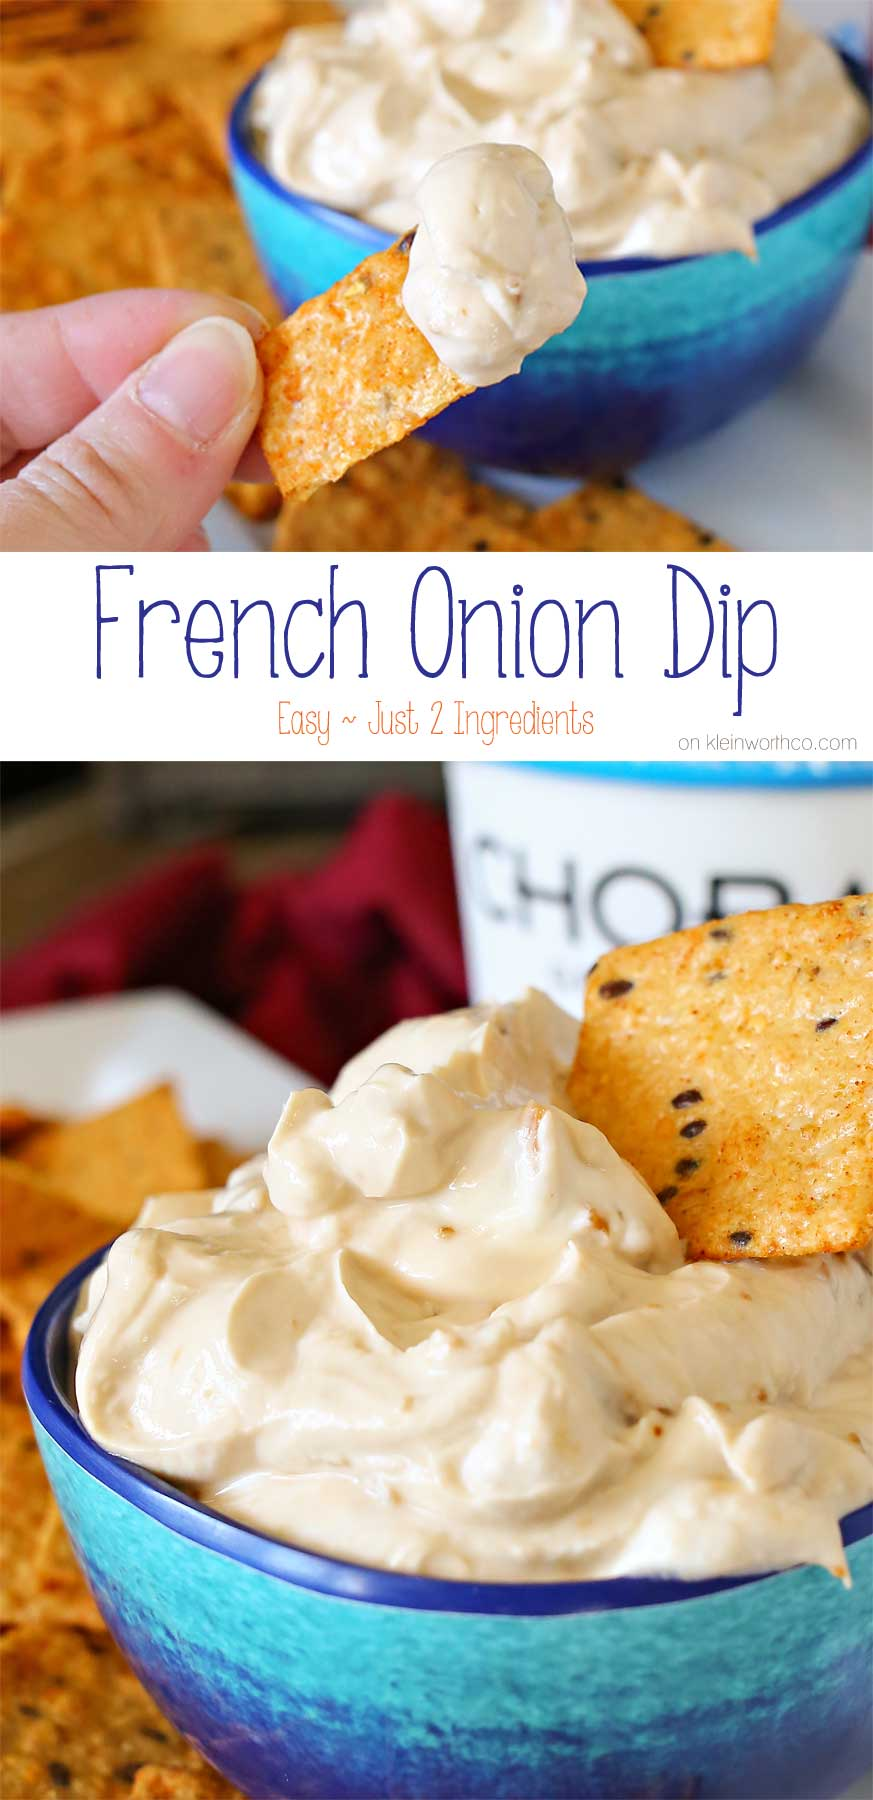 Easy French Onion Dip